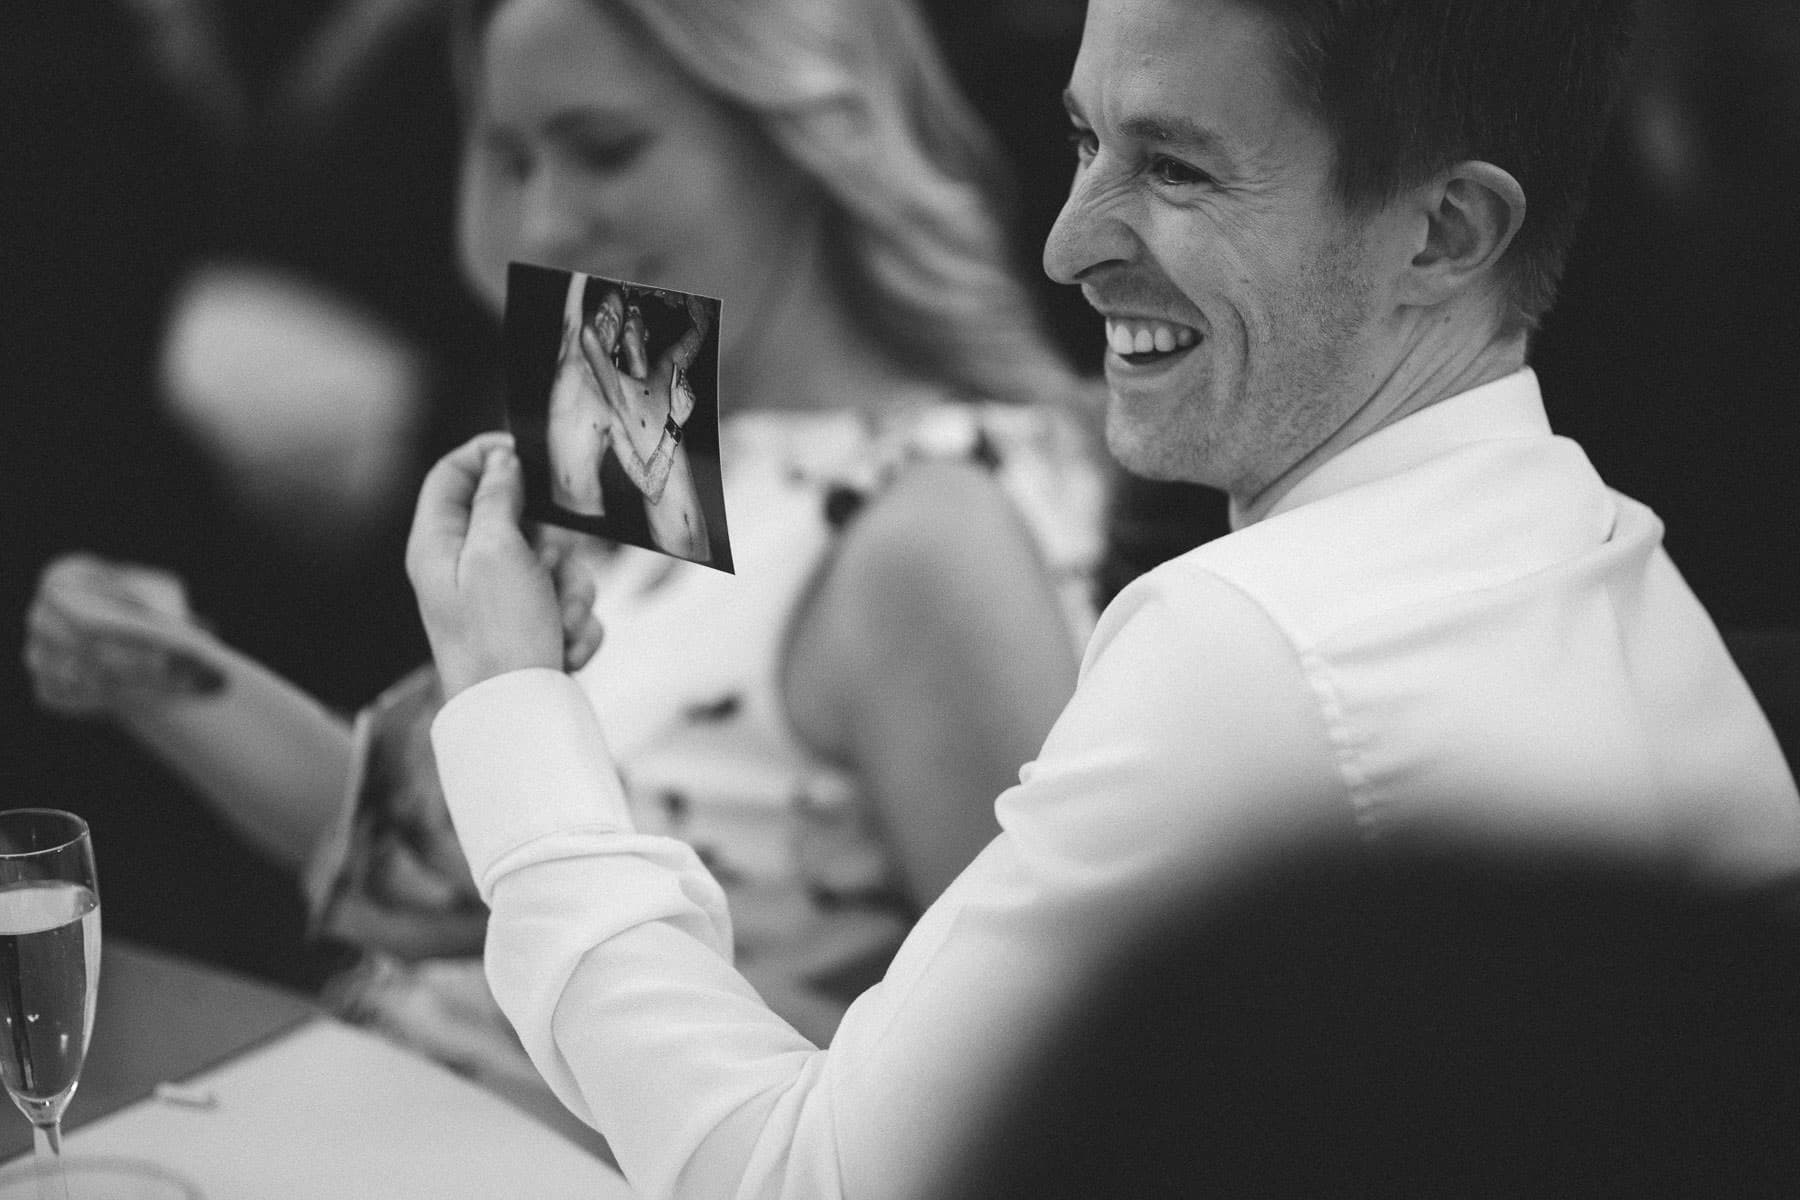 Embarrassing photos of the groom during the best man's speech